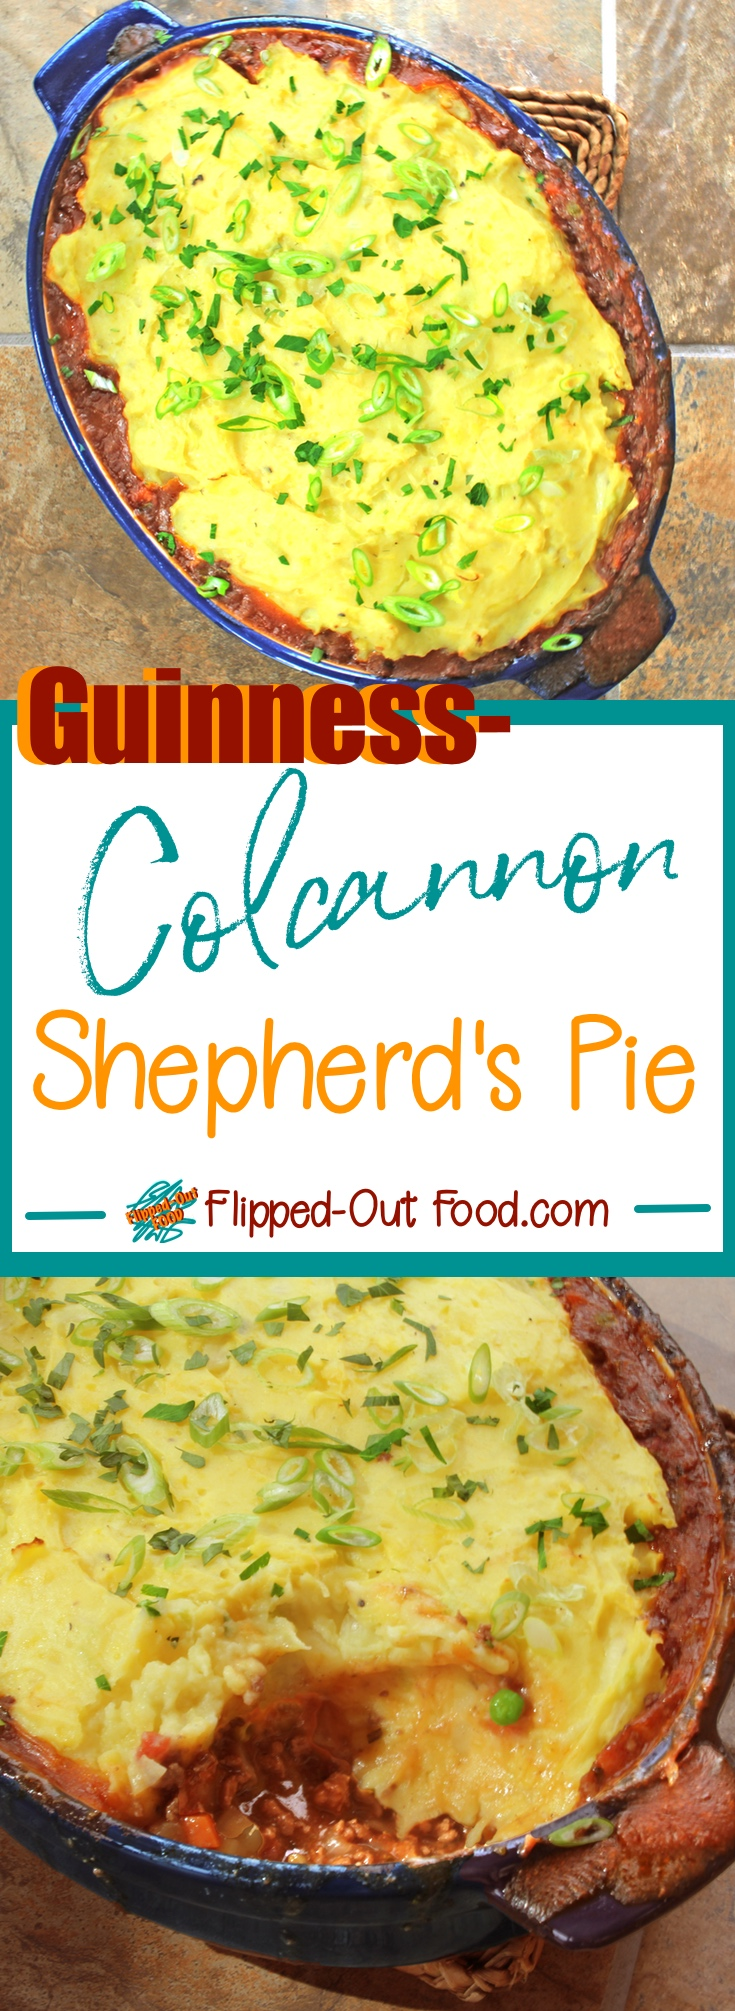 Guinness-Colcannon Shepherd's Pie is pure, decadent Irish comfort food. The filling and colcannon can be prepared and the pie assembled a day or two in advance for an easy meal on St. Paddy's Day. #irishfood #shepherdspie #cottagepie #saintpatricksday #comfortfood